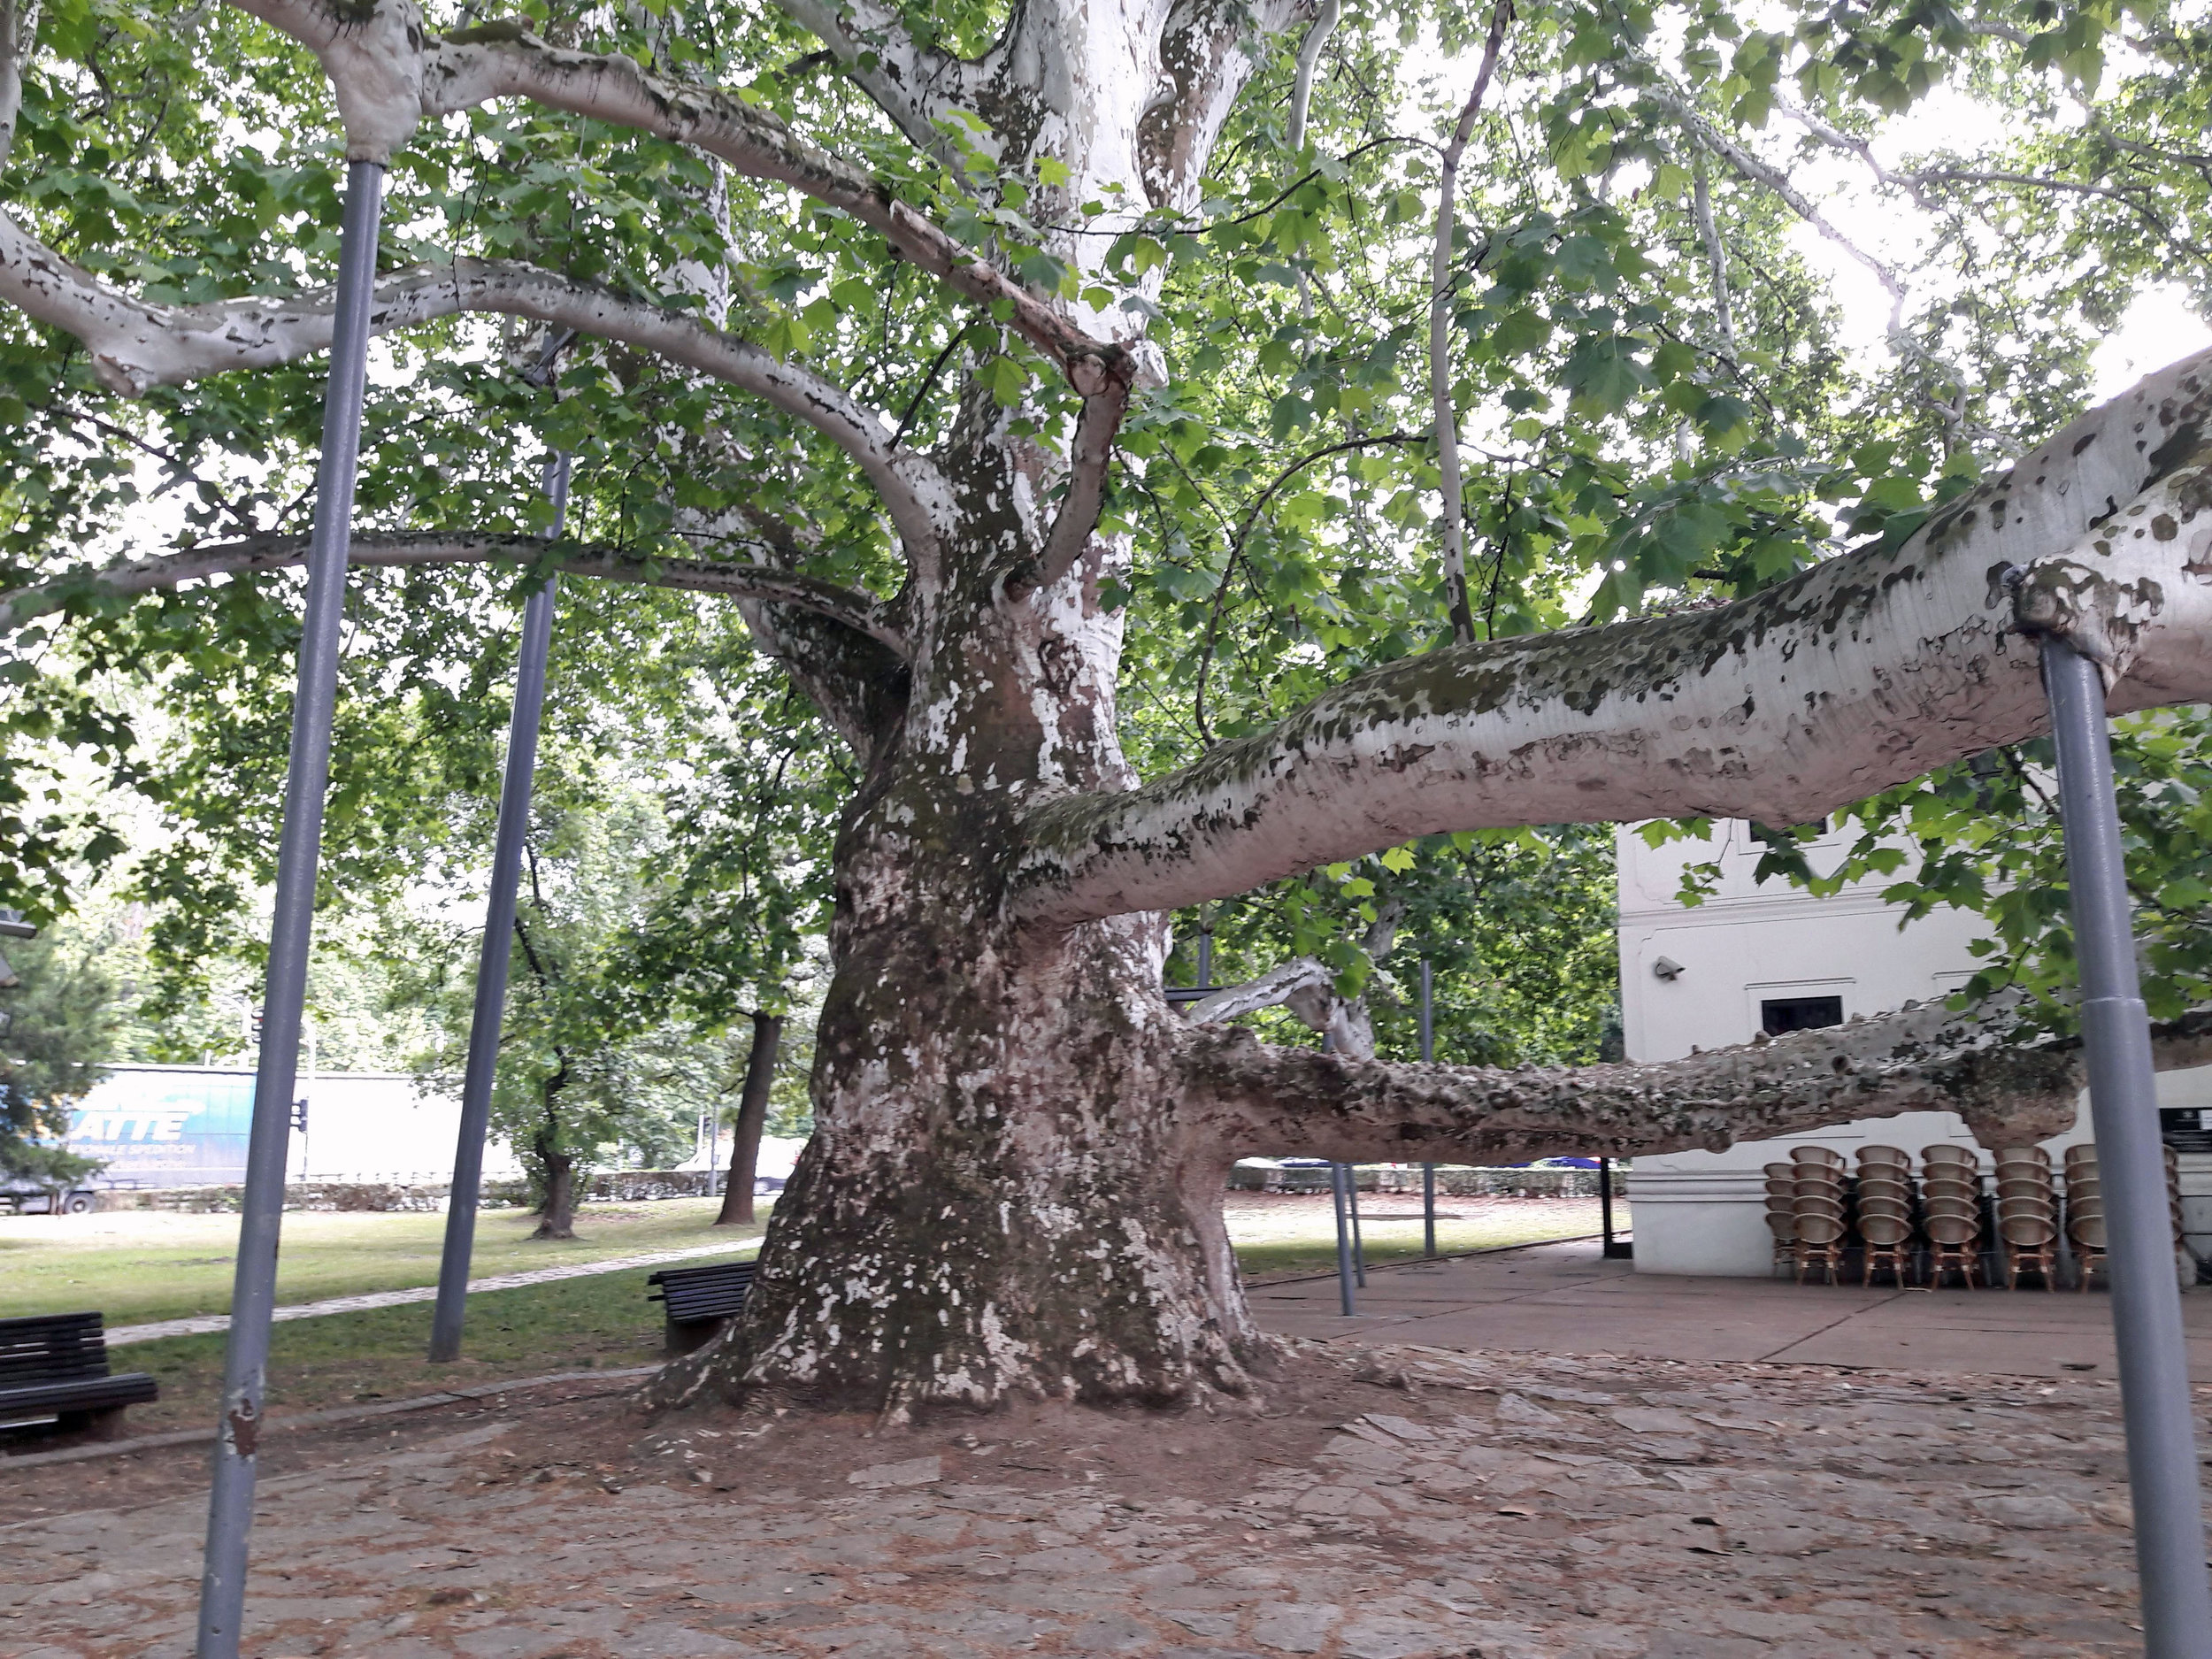 The London Plane Tree in Topčider Park, Belgrade